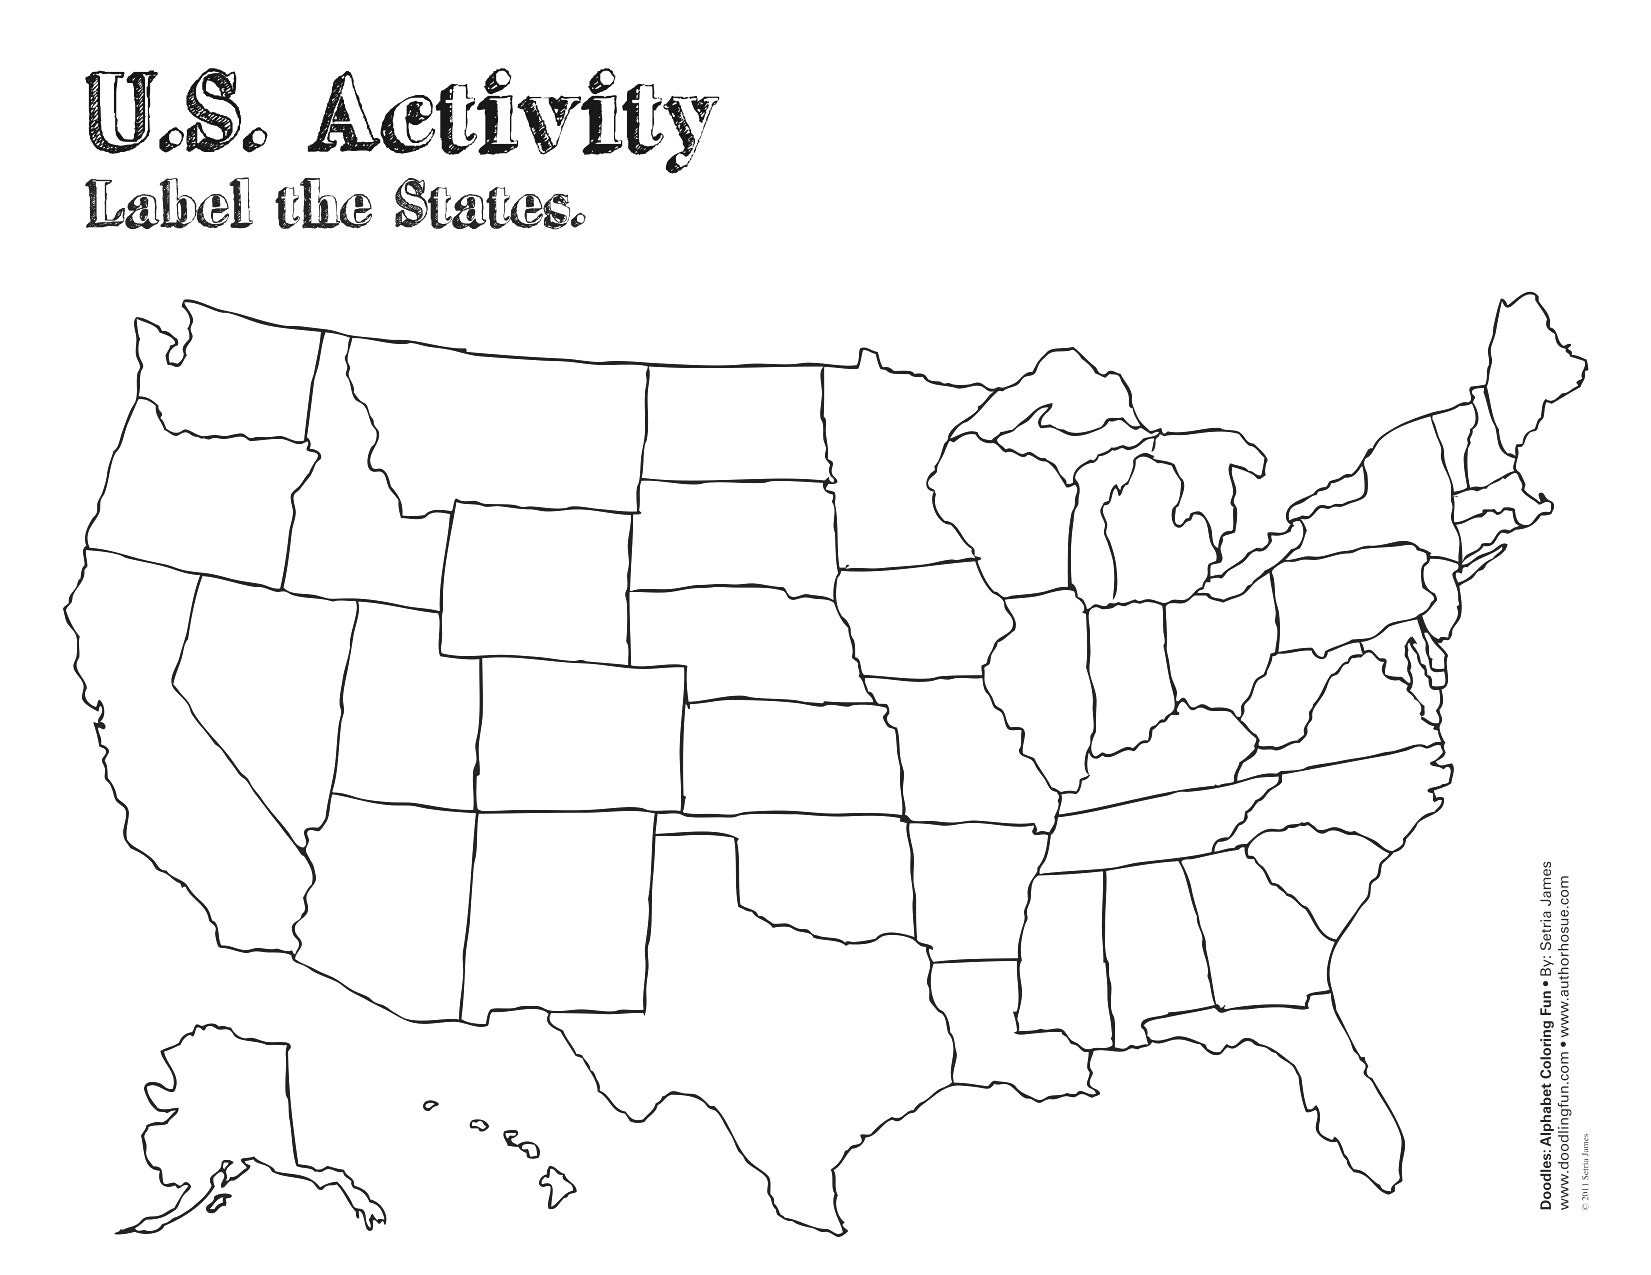 Free Printable Map Of The United States Without State Names Unique United States Map Printable Blank Refrence Free Printable Blank Us